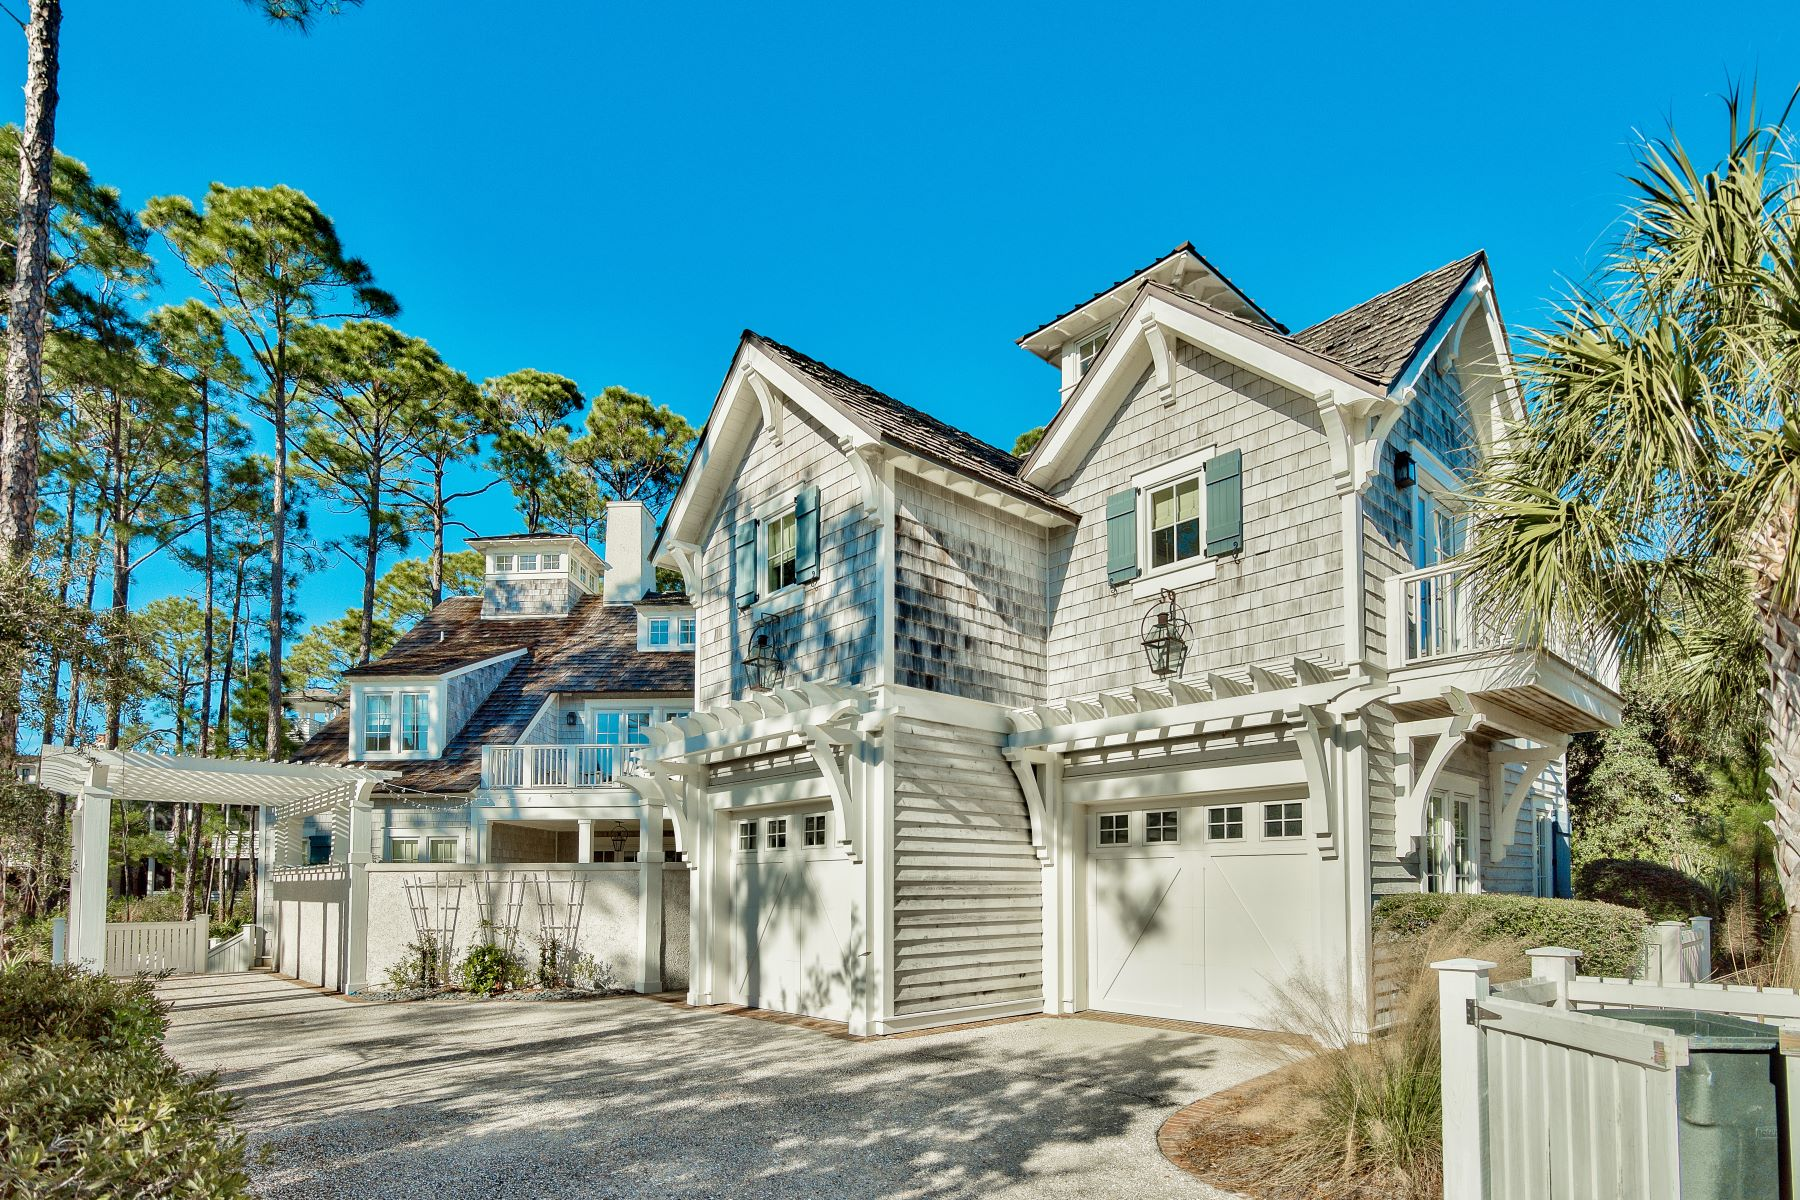 Single Family Homes for Sale at Custom Gulf View Home on Generous Corner Lot 8 Shingle Lane, Watersound, Florida 32461 United States